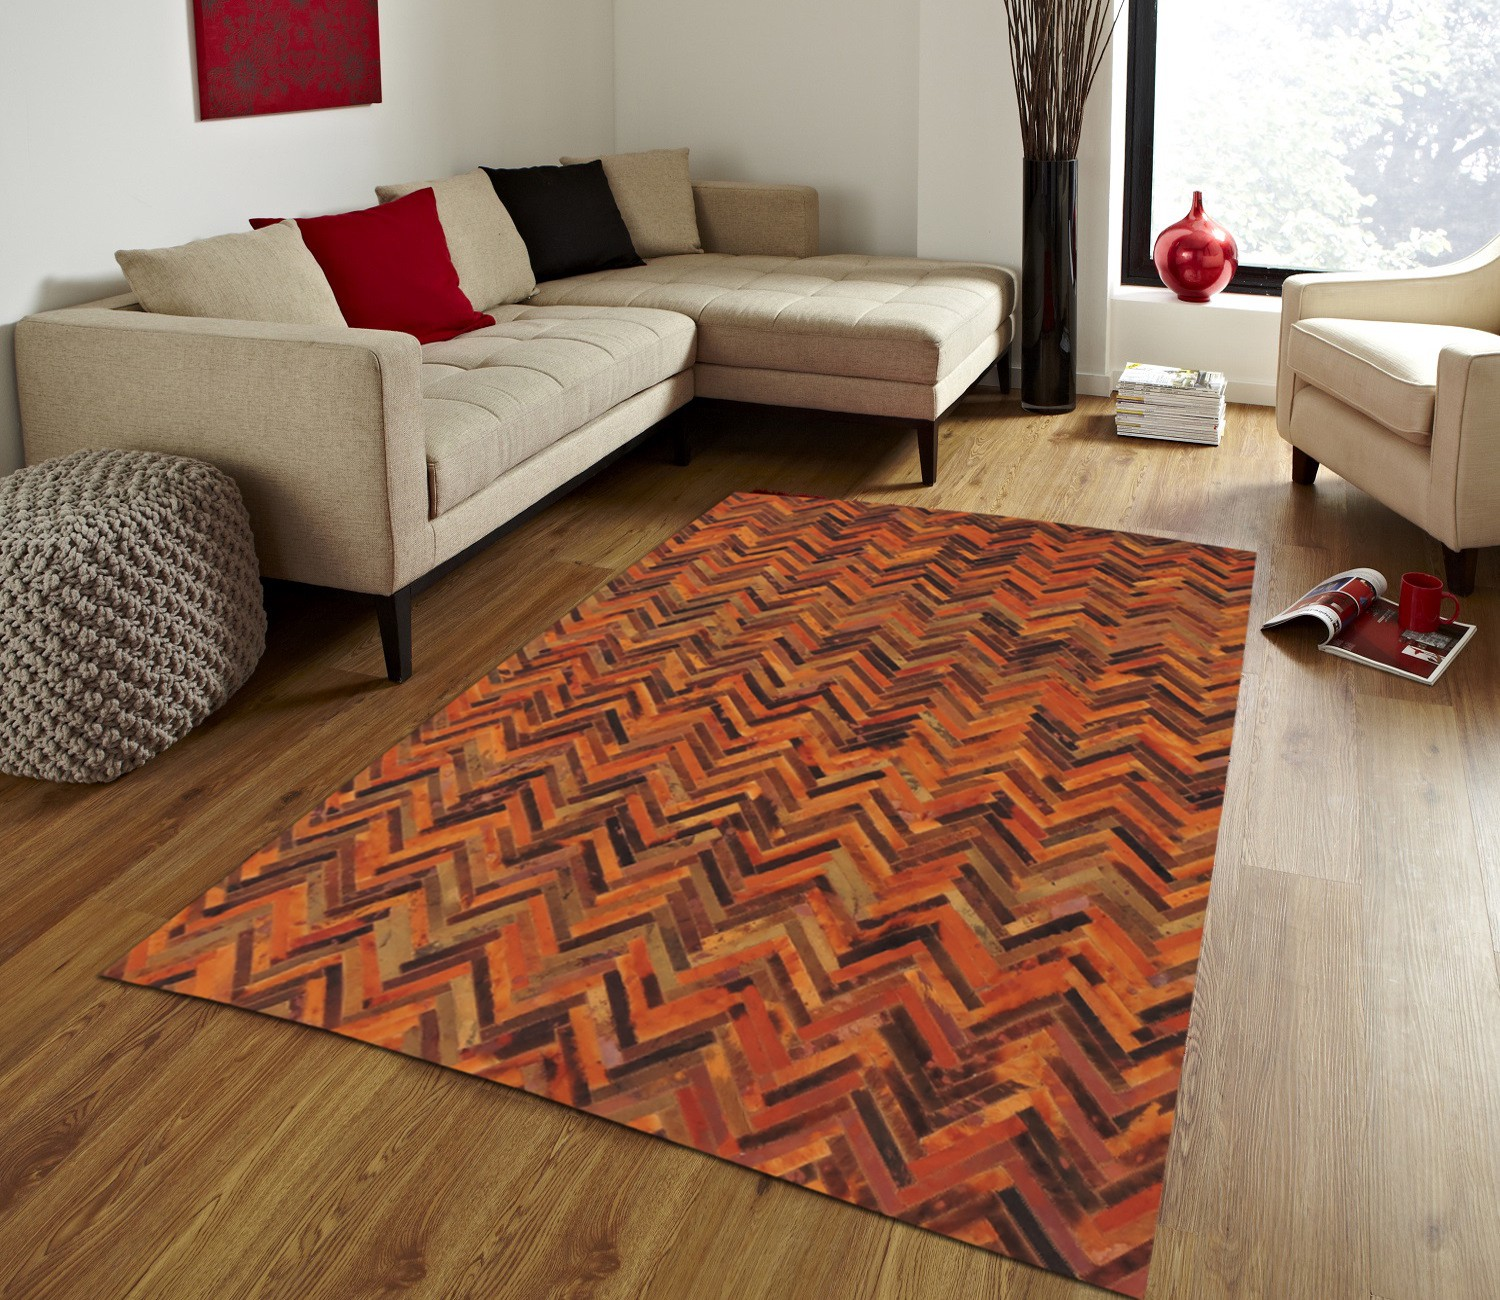 Looking For Designer Leather Carpets Luxury Home Decor